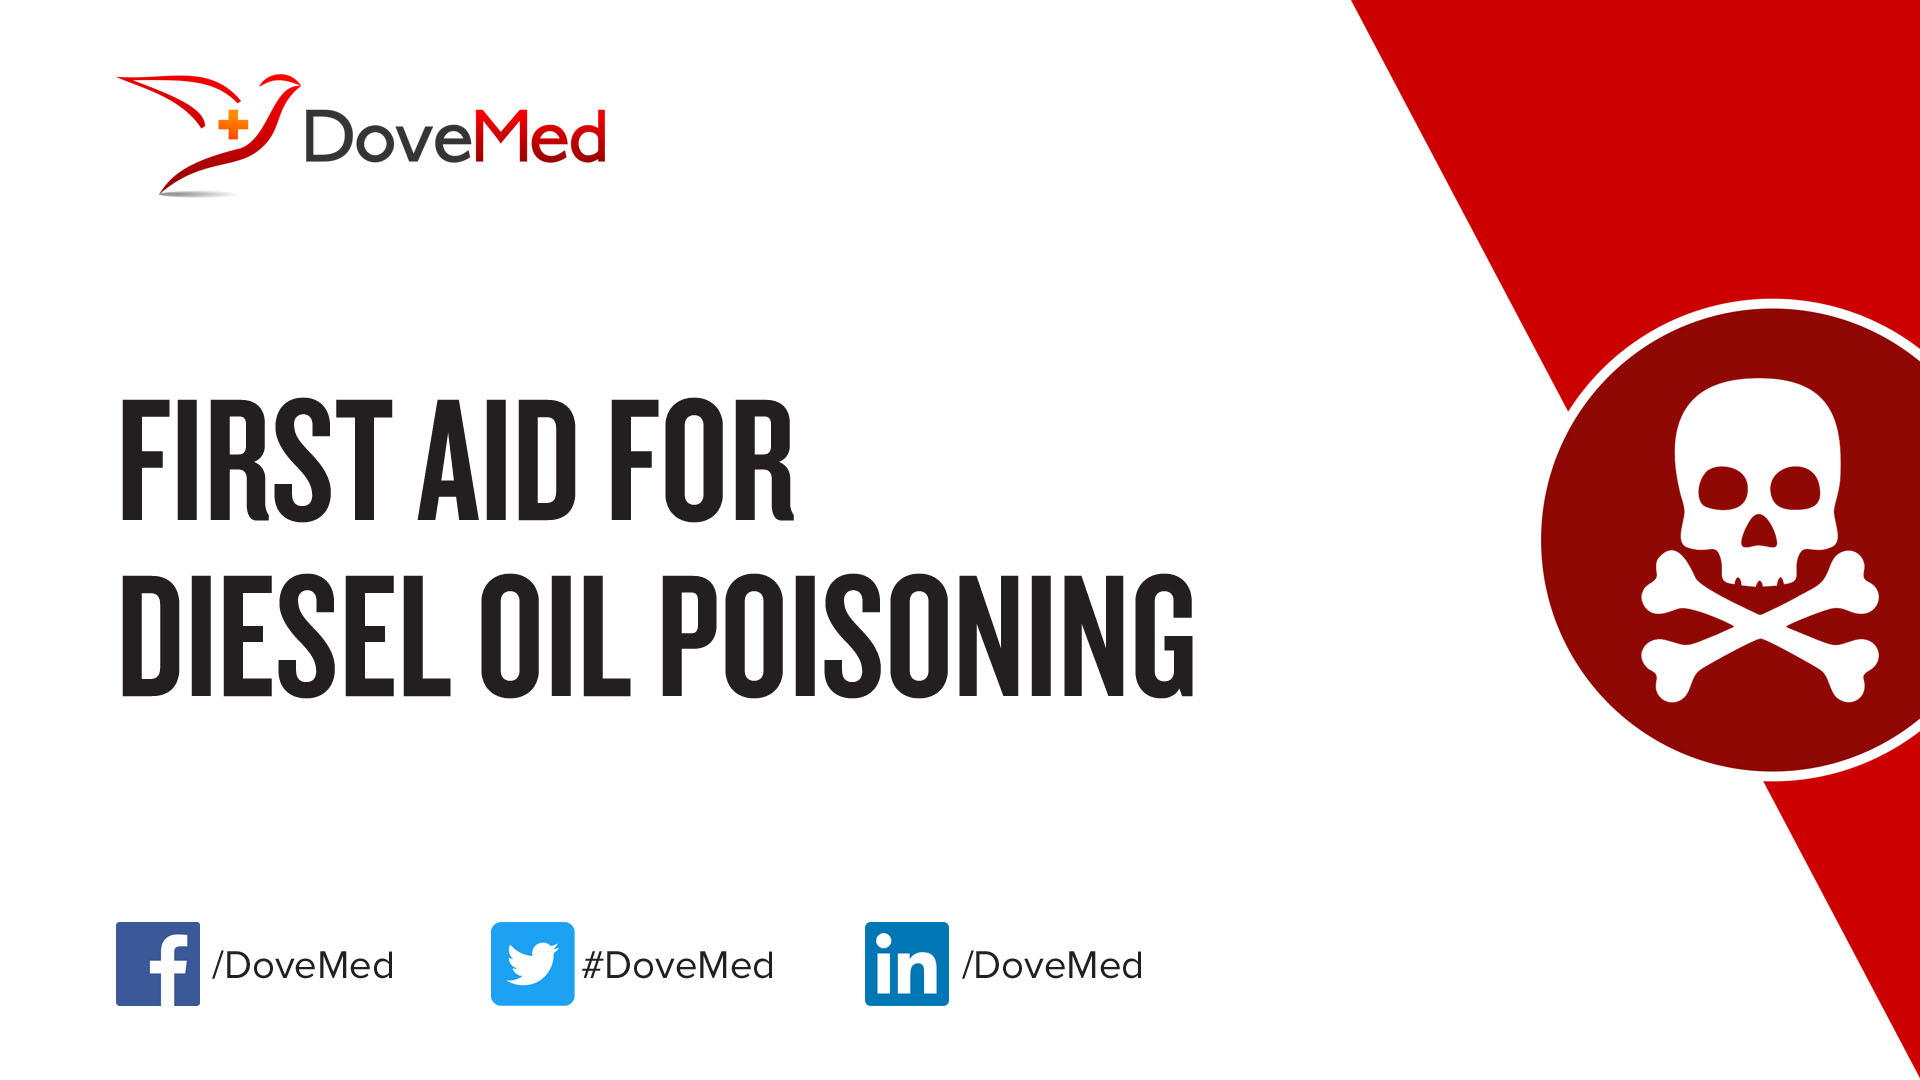 First Aid for Diesel Oil Poisoning